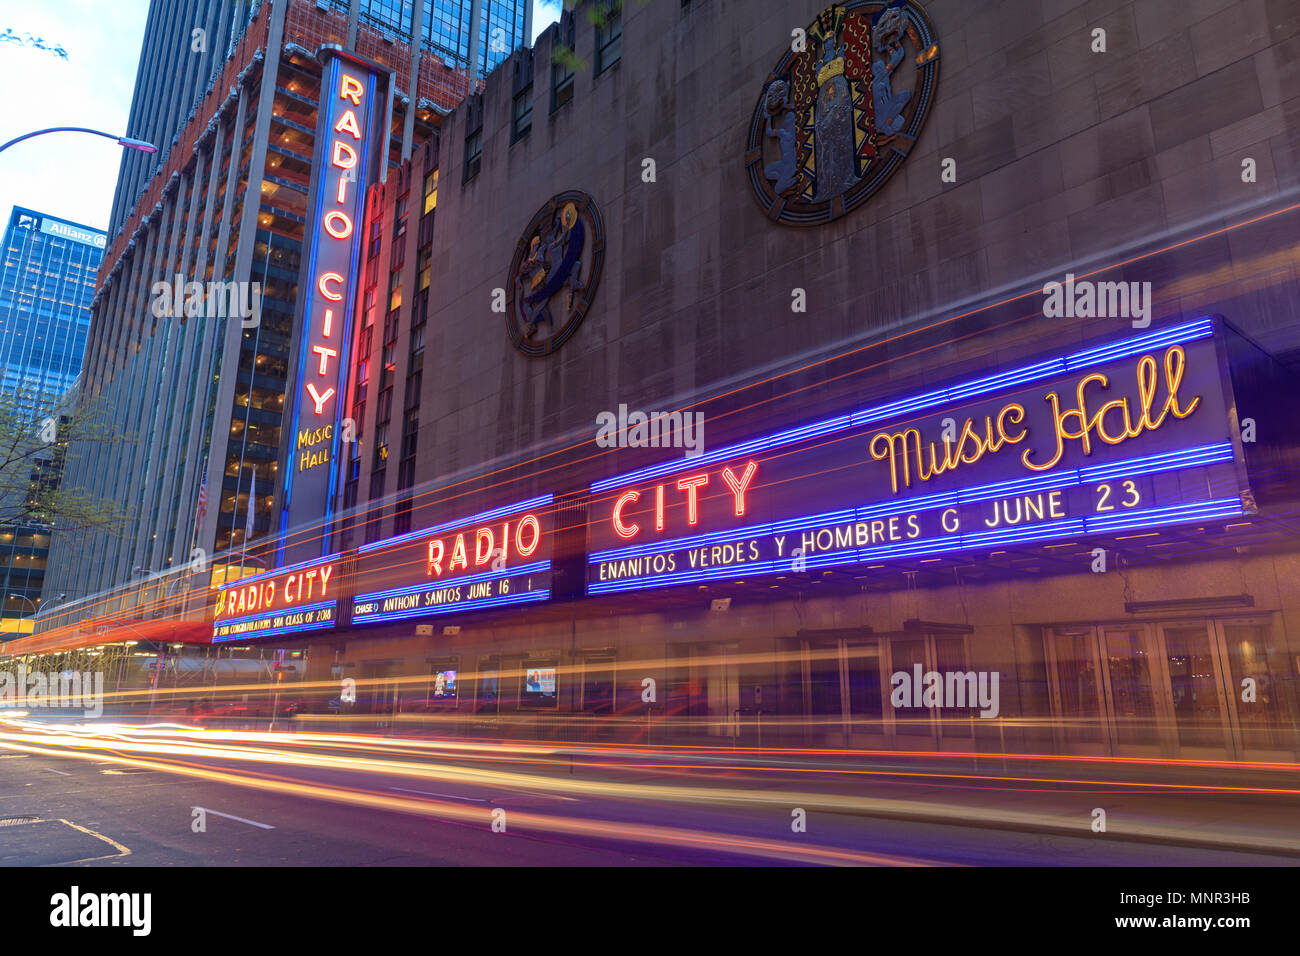 New York, USA - May 6, 2018 : Corner of Radio City Music Hall, theater building at Rockefeller Center, modern architecture with billboards. Entertainm - Stock Image